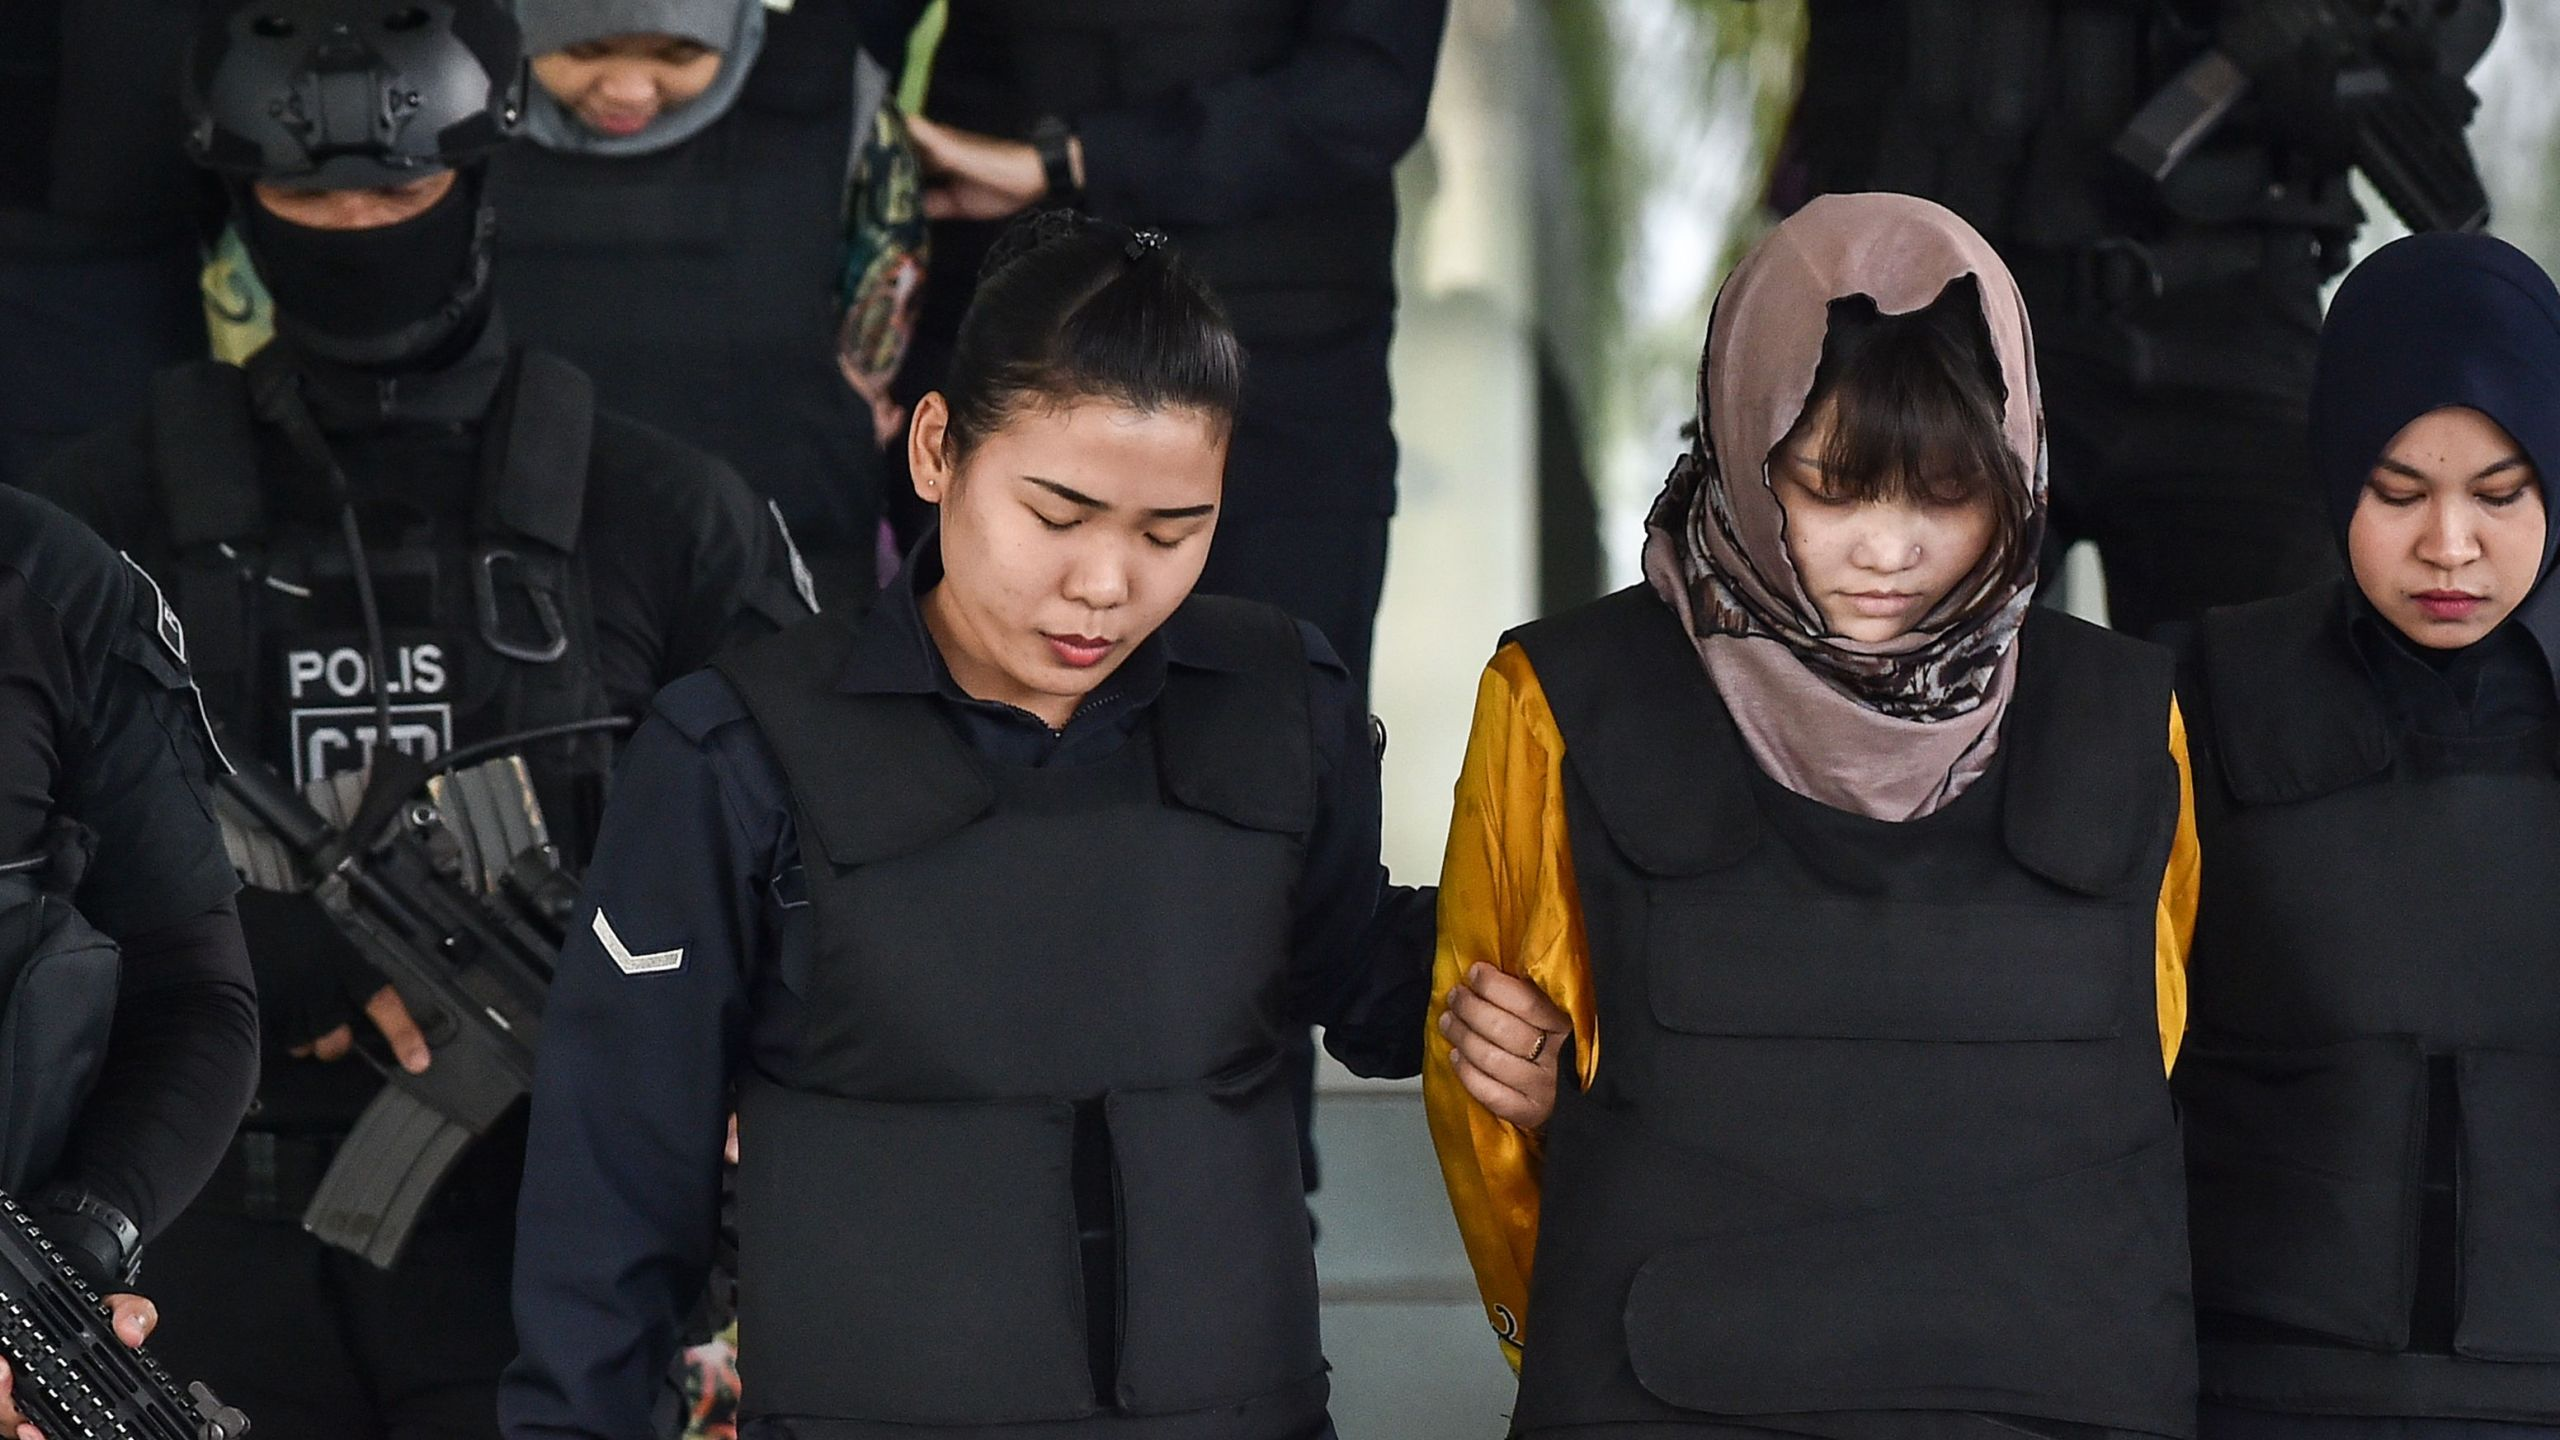 Vietnamese national Doan Thi Huong (front, second from right) and Indonesian national Siti Aisyah (back, second from left) are escorted by Malaysian police after a court session for their trial for their alleged roles in the assassination of Kim Jong Nam at the Shah Alam High Court, outside Kuala Lumpur, on June 27, 2018. (Credit: Mohd Rasfan / AFP / Getty Images)